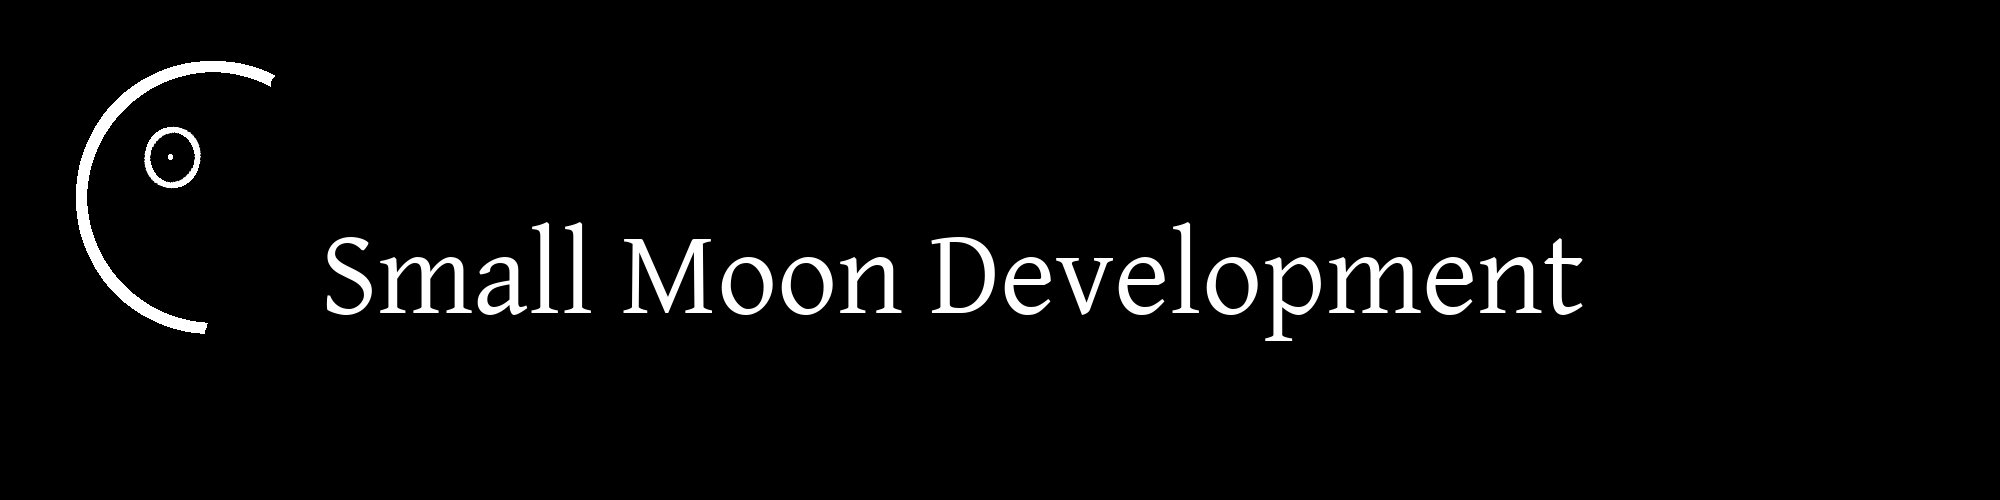 Small Moon Development